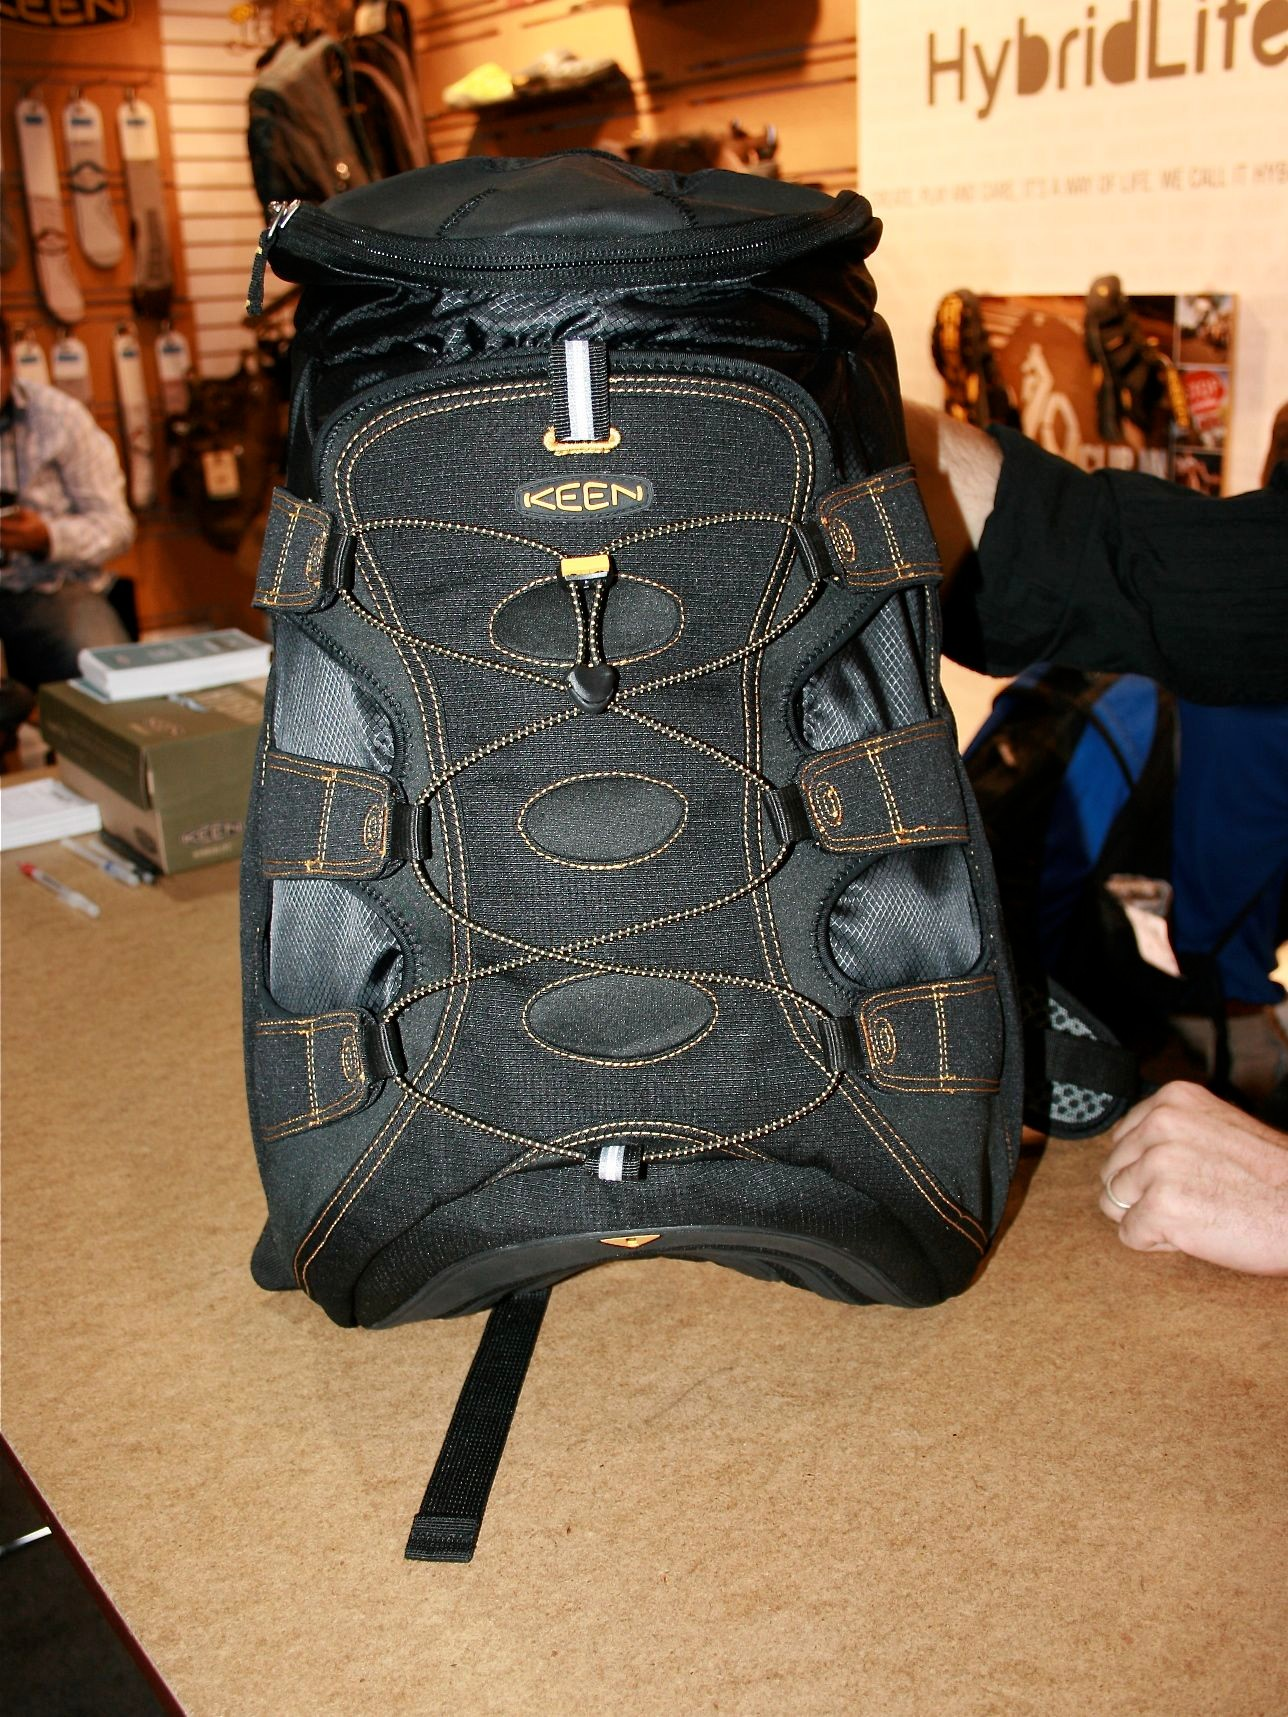 Running Keen sandals? Here's a new commuter backpack to match your Newports.